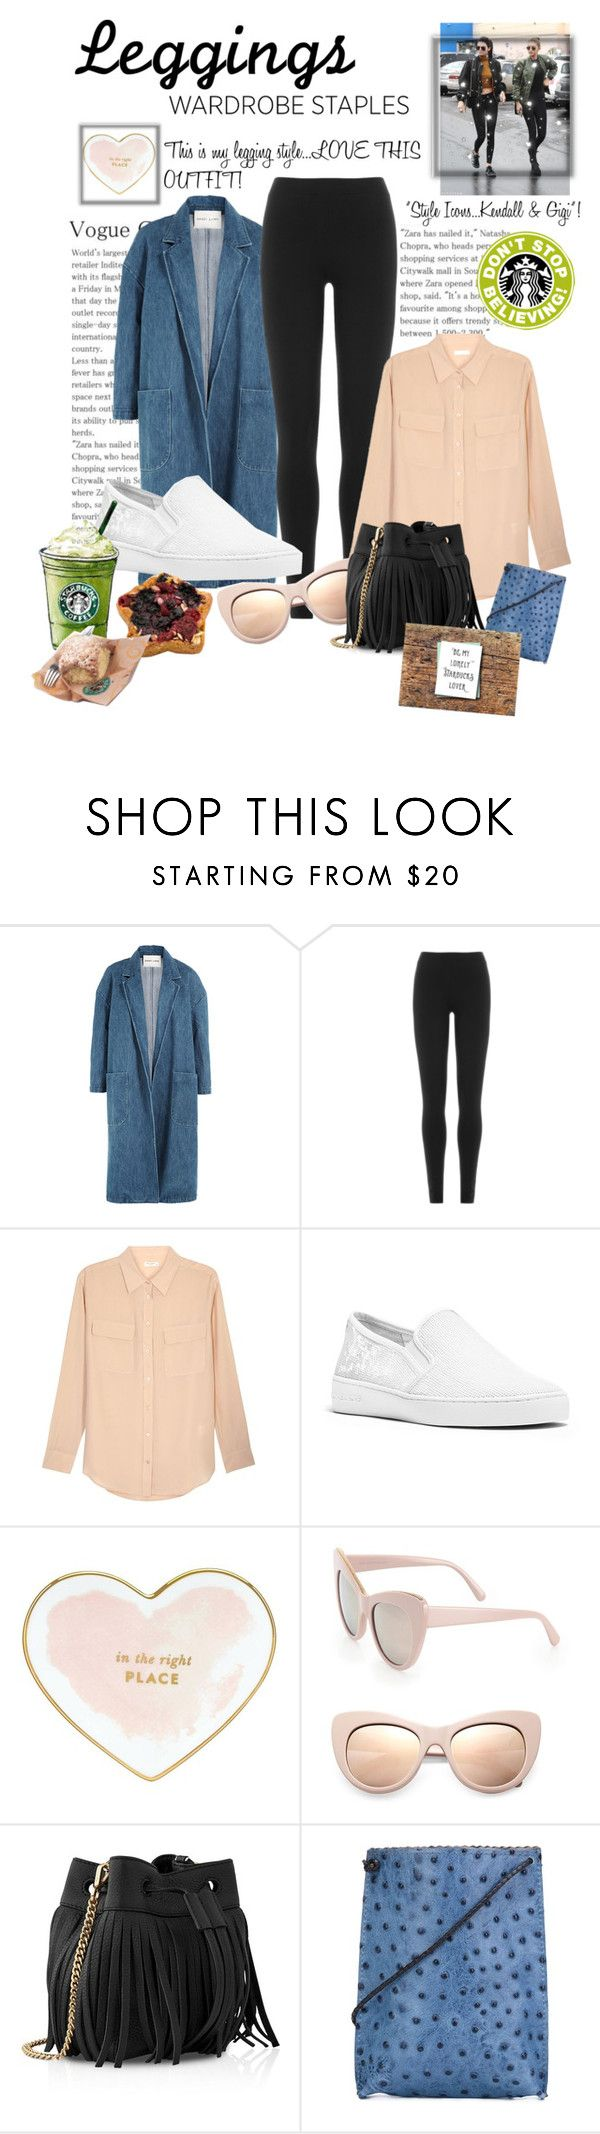 """""""CONTEST...LEGGINGS...This is my favorite  leggings outfit!"""" by onesweetthing ❤ liked on Polyvore featuring Sandy Liang, ASAP, DKNY, Equipment, MICHAEL Michael Kors, Kate Spade, STELLA McCARTNEY, Whistles, B.May and Coffee Shop"""